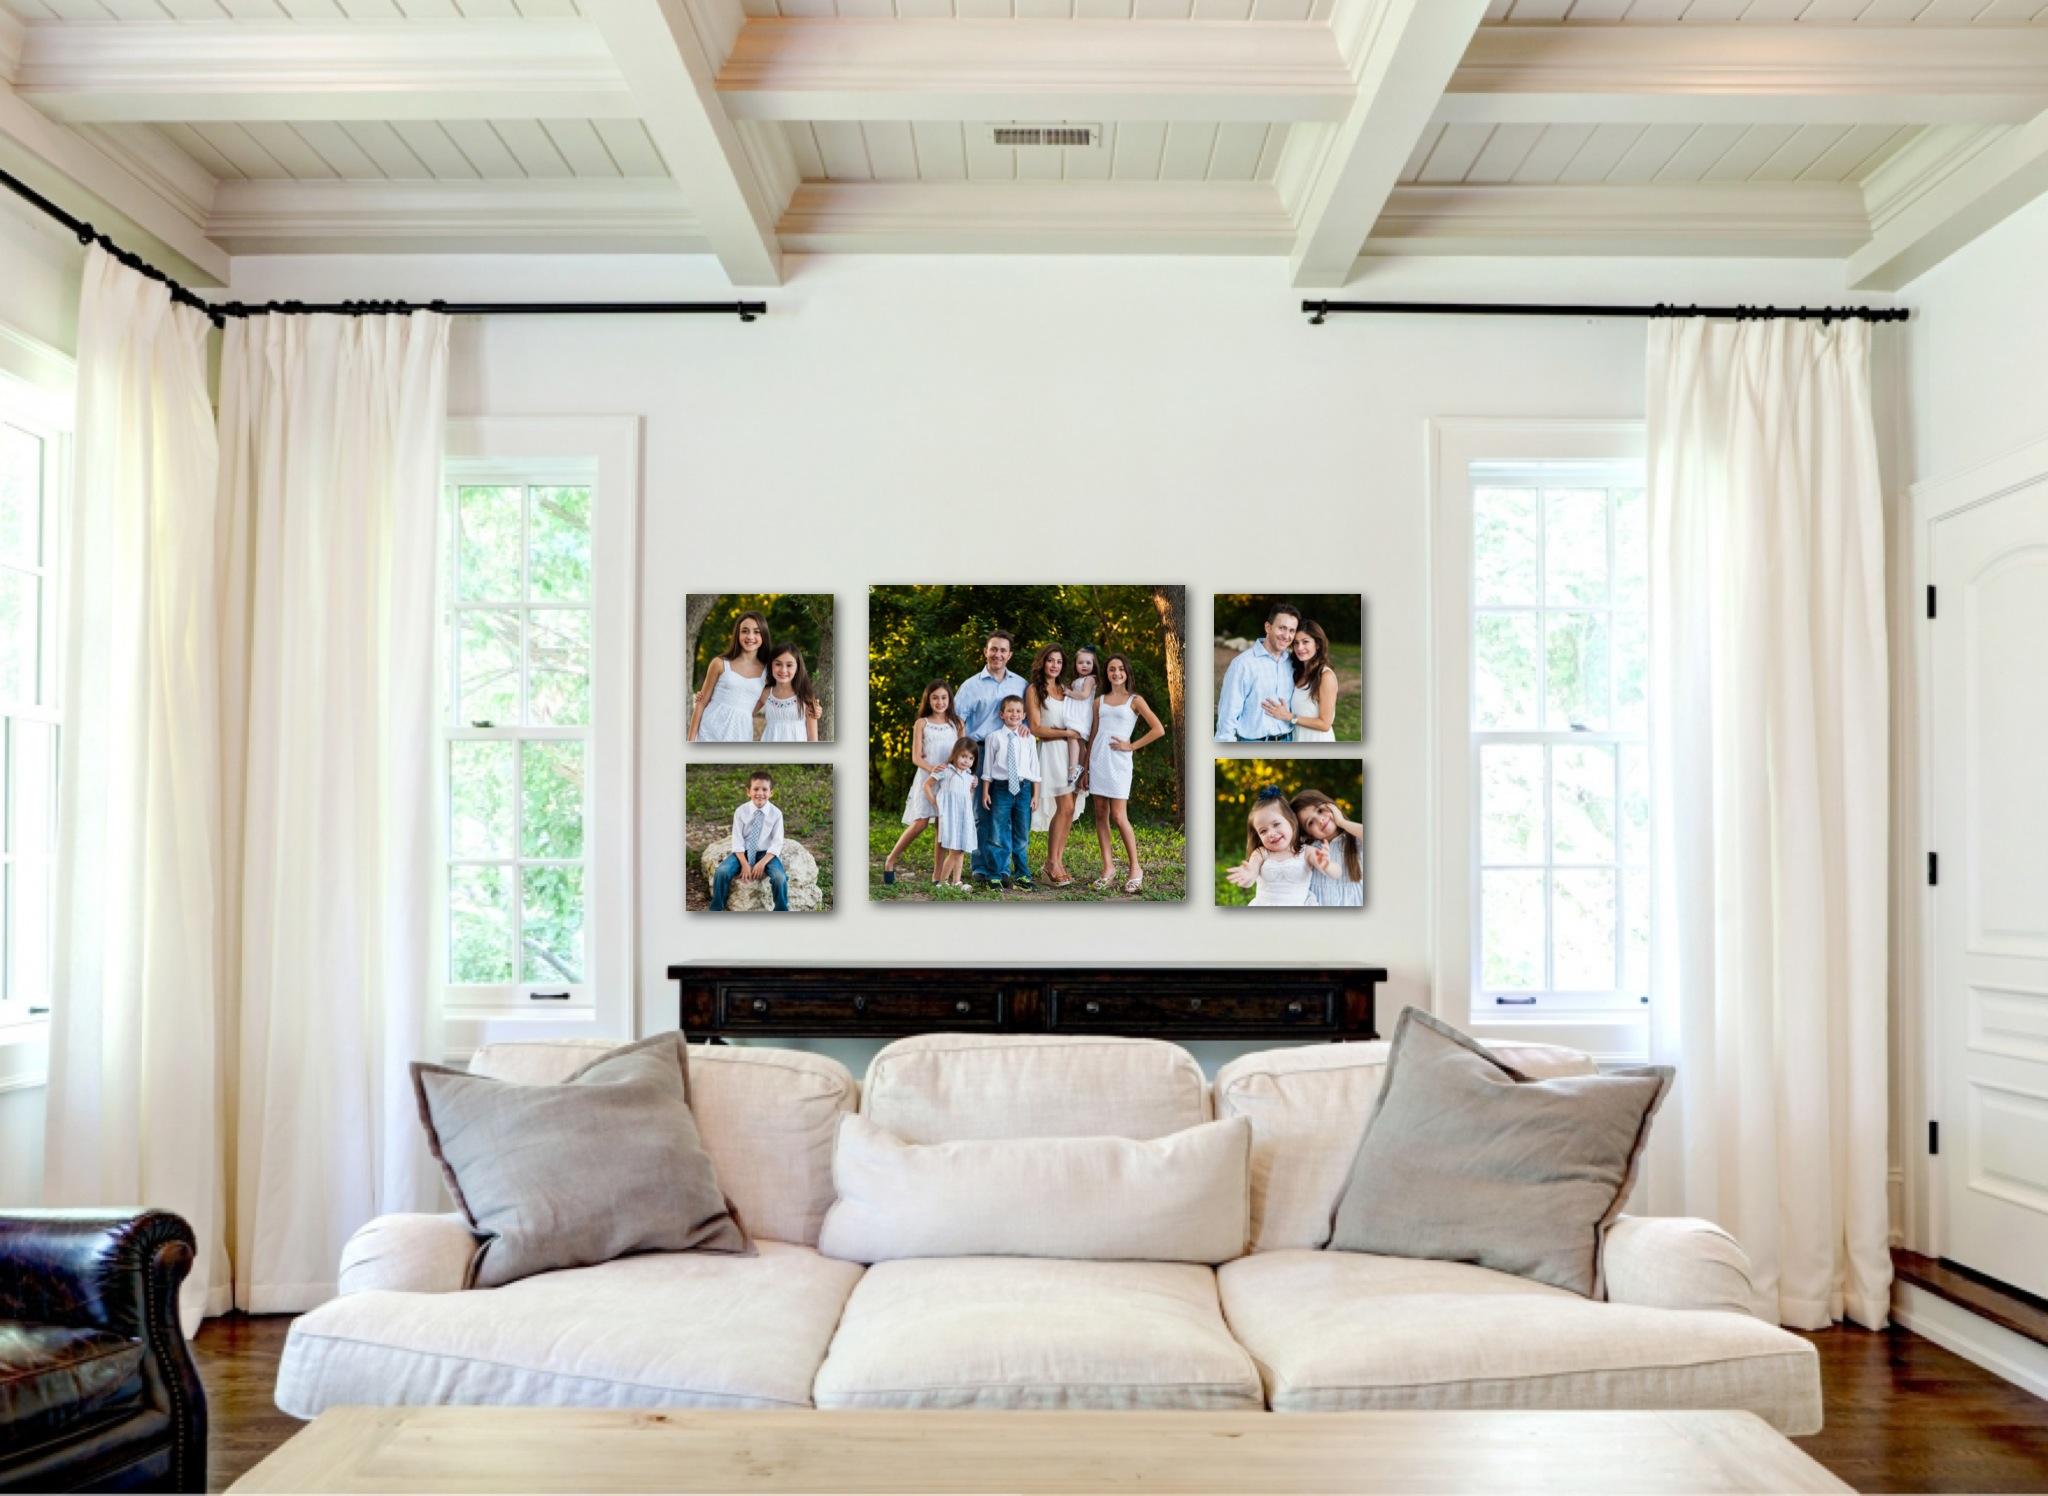 Wall gallery ideas morris family for Picture wall ideas